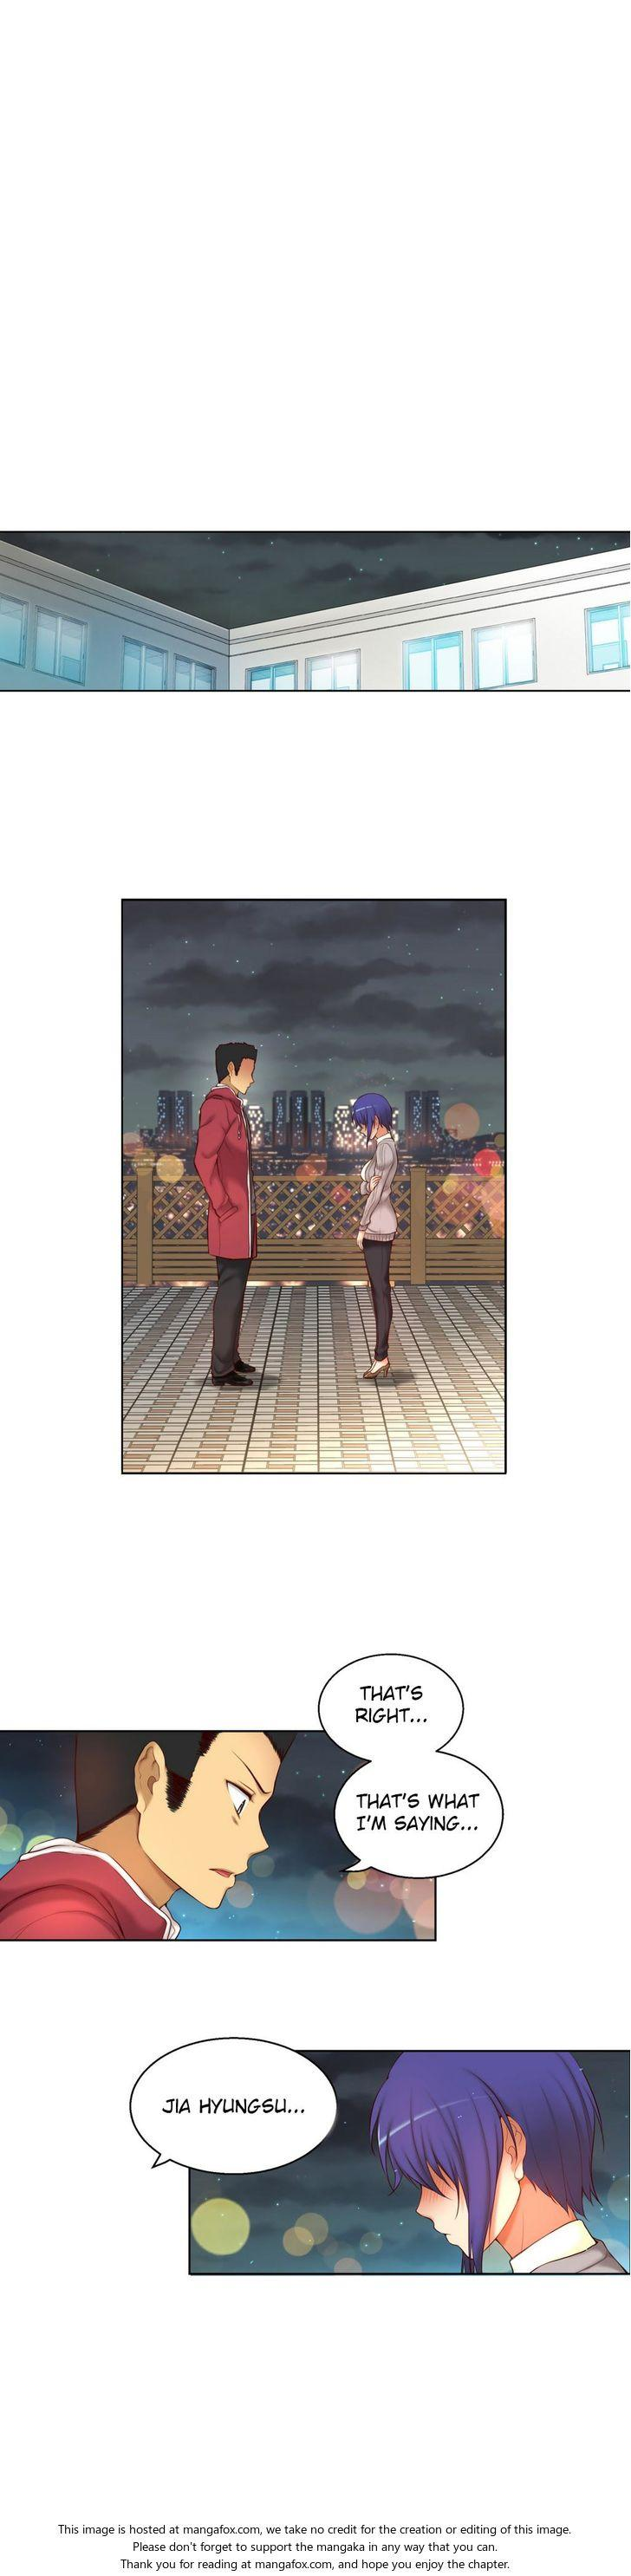 [Donggul Gom] She is Young (English) Part 1/2 1133